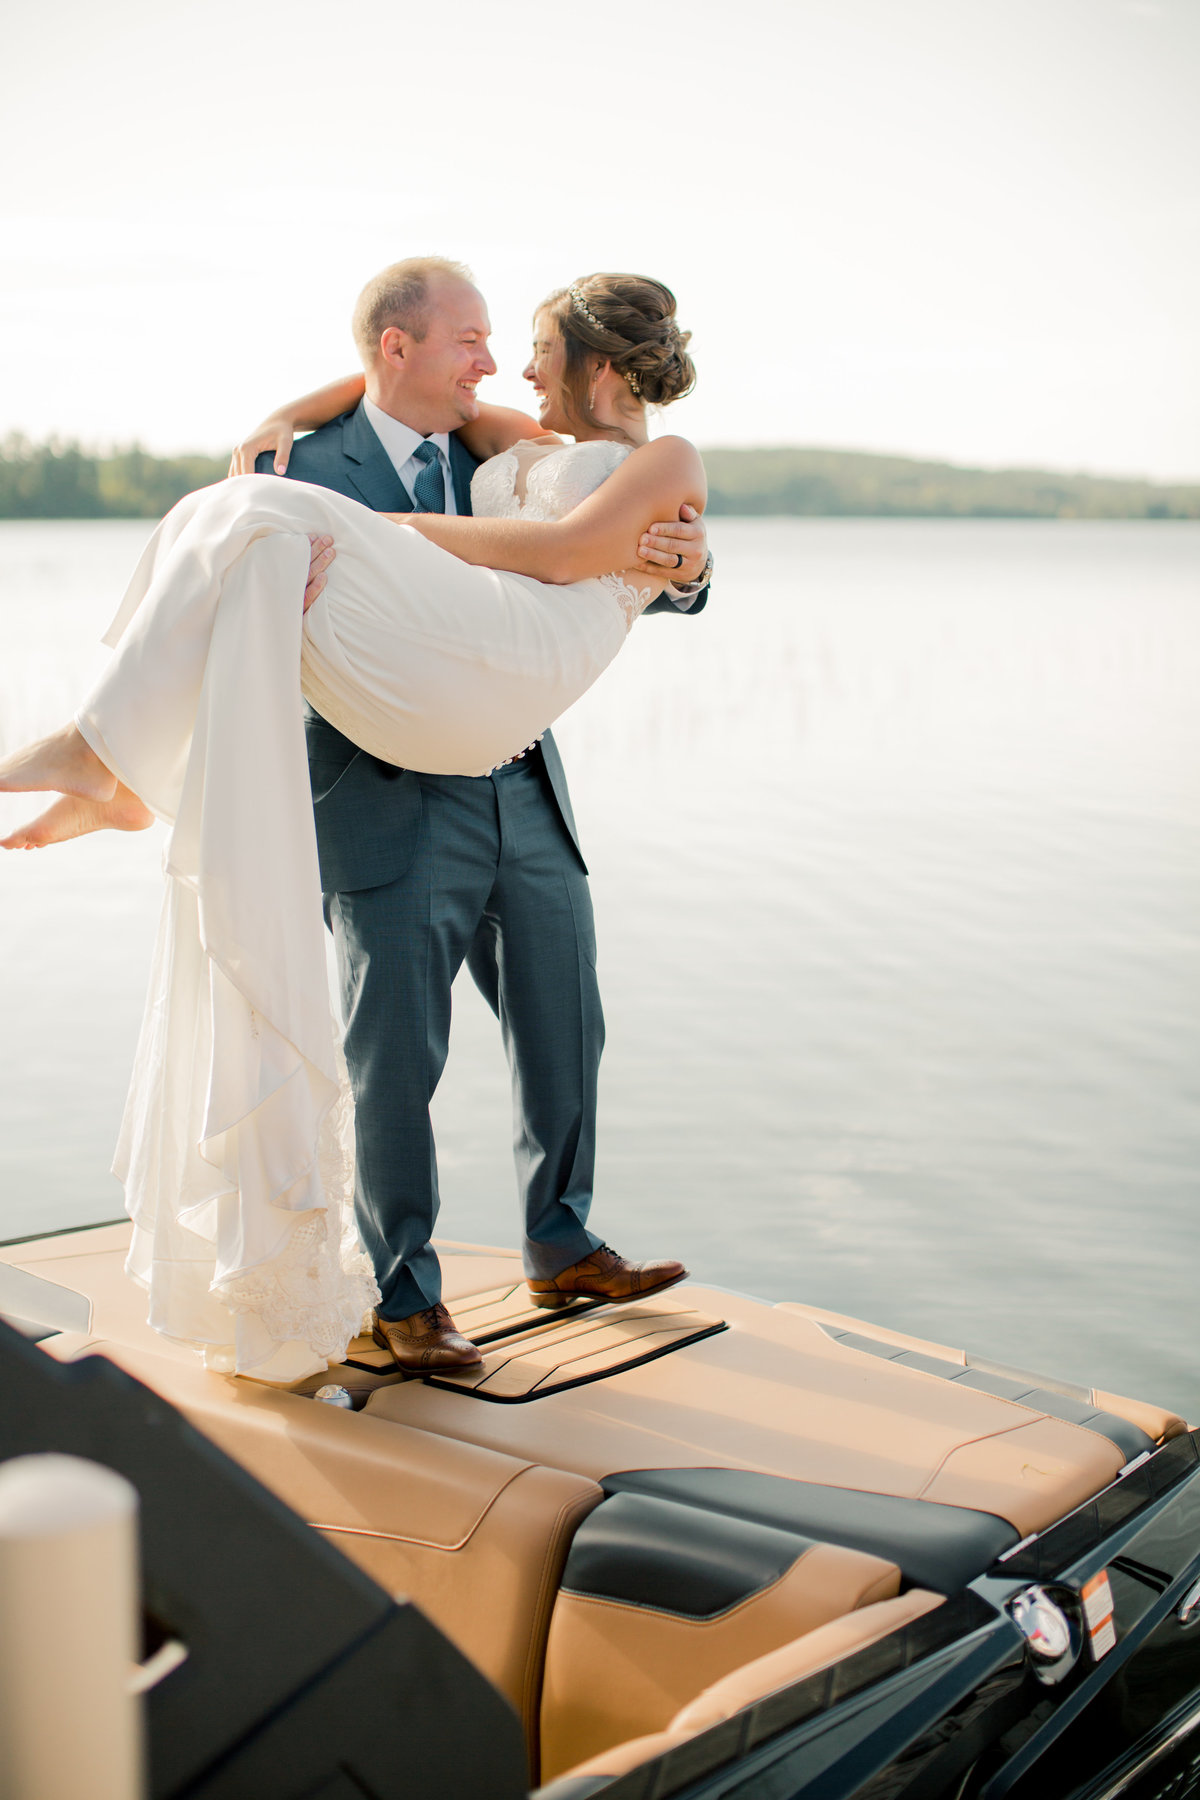 crossing the threshold of the dock to boat carried by new husband gull lake minnesota